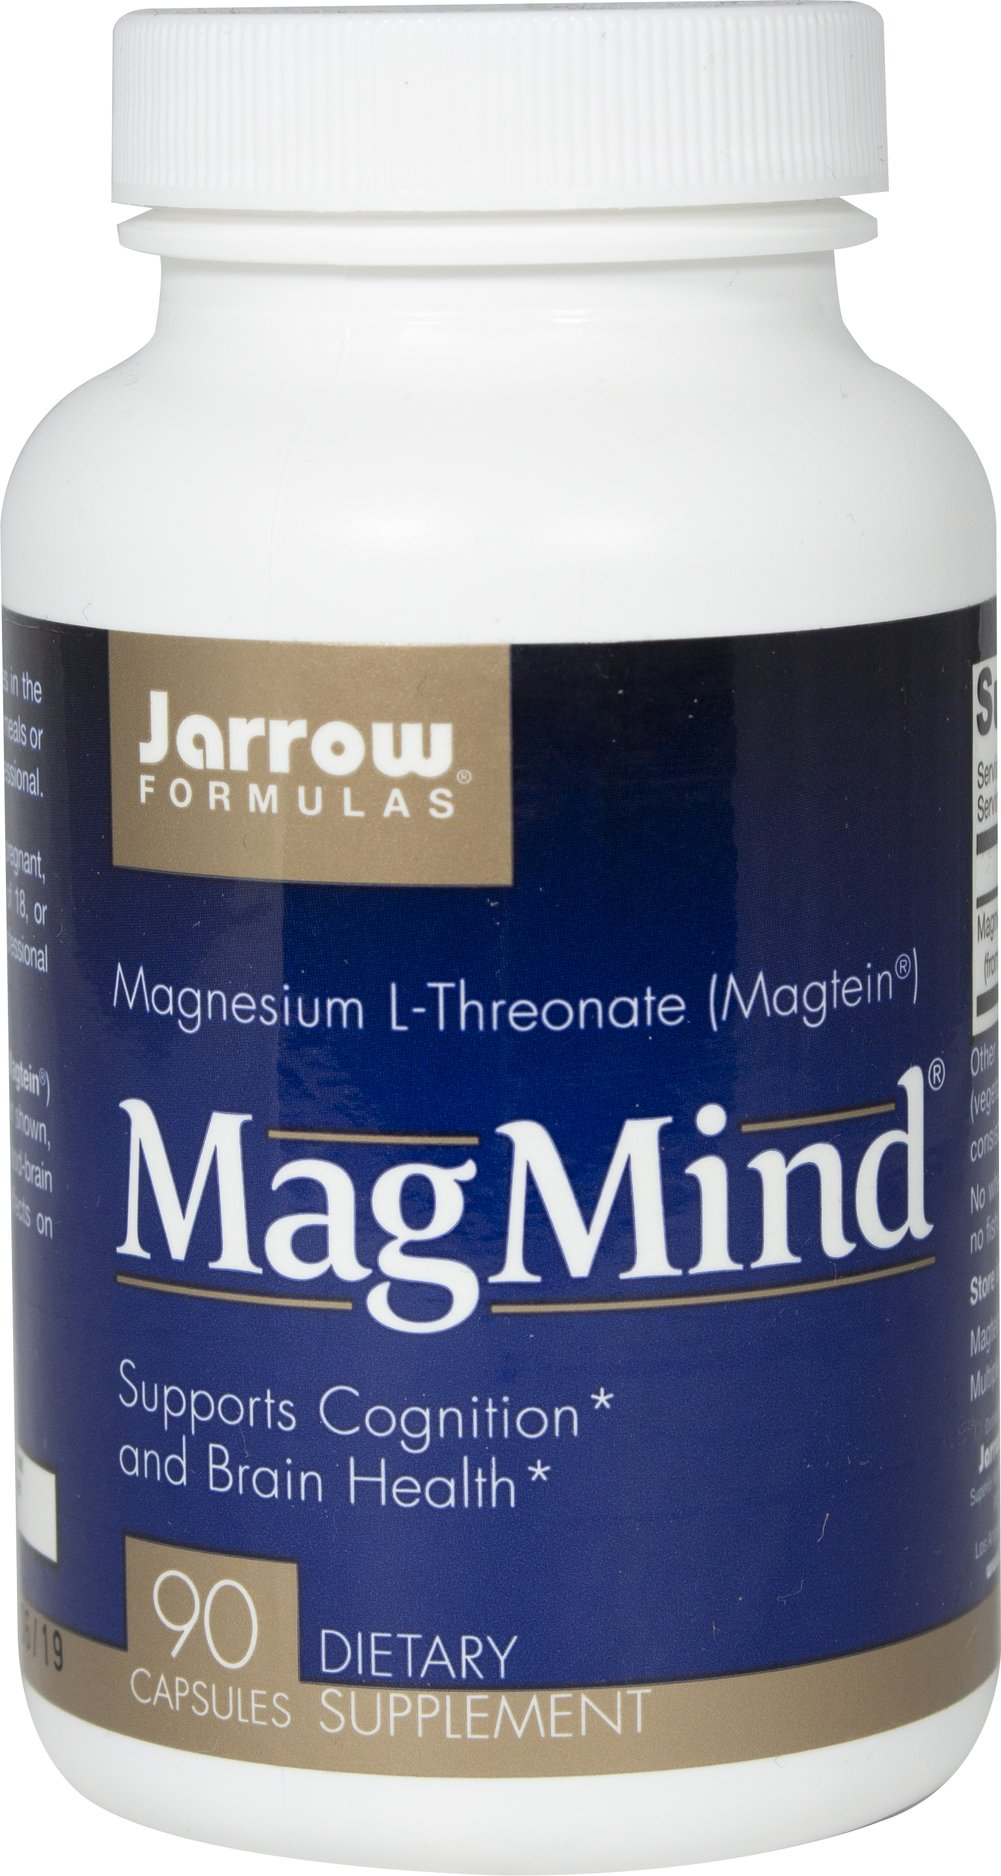 MagMind™ Magnesium L-Threonate We are proud to bring you MagMind™ Magnesium L-Threonate from Jarrow. Look to Puritan's Pride for high quality national brands at the best possible prices. 90 Vegi Caps  $27.27